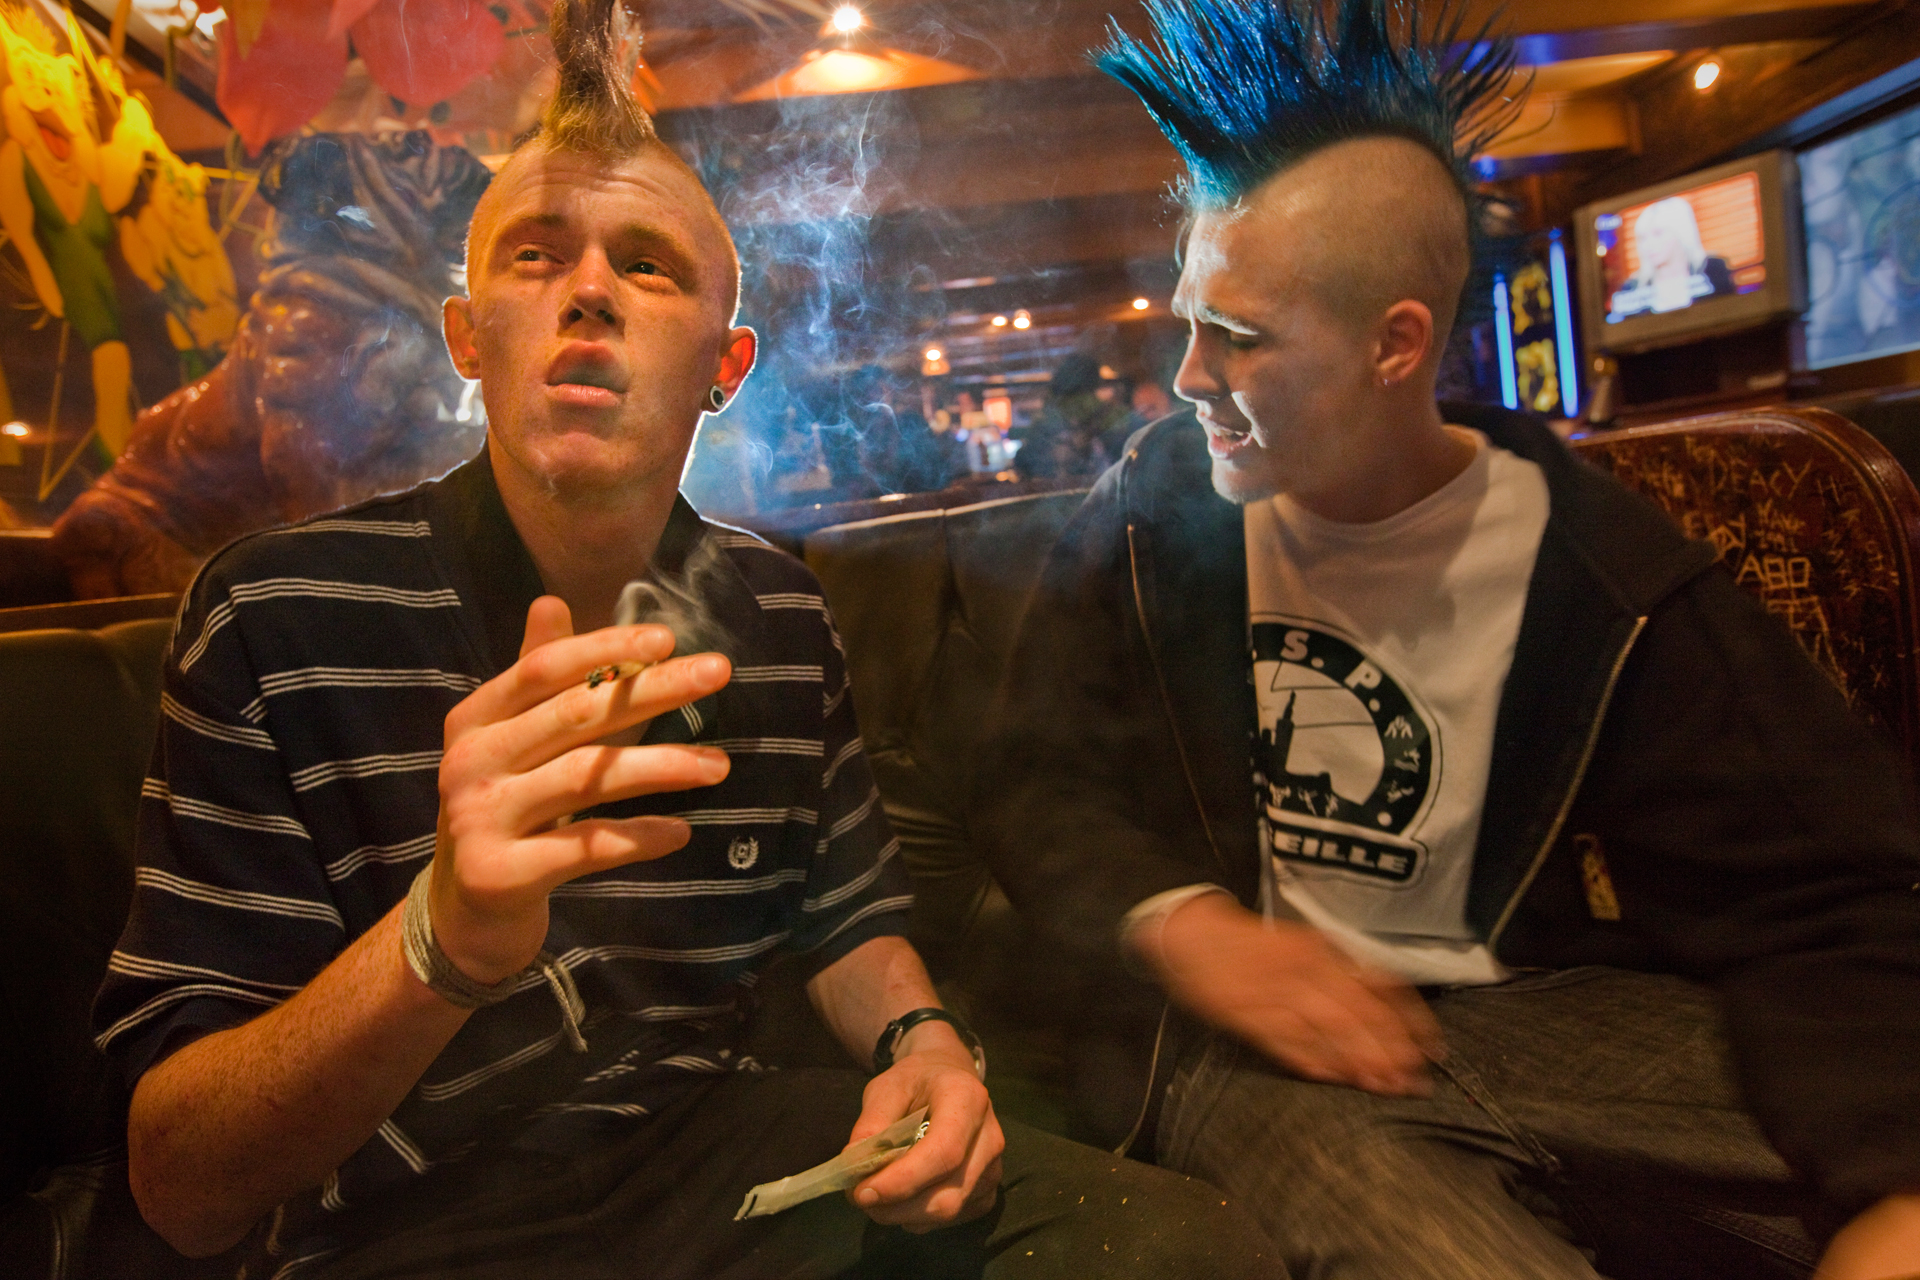 Sporting Mohawks, two customers enjoy hash at The Bulldog, a famous cannabis-selling coffee shop in Amsterdam's Red Light District.